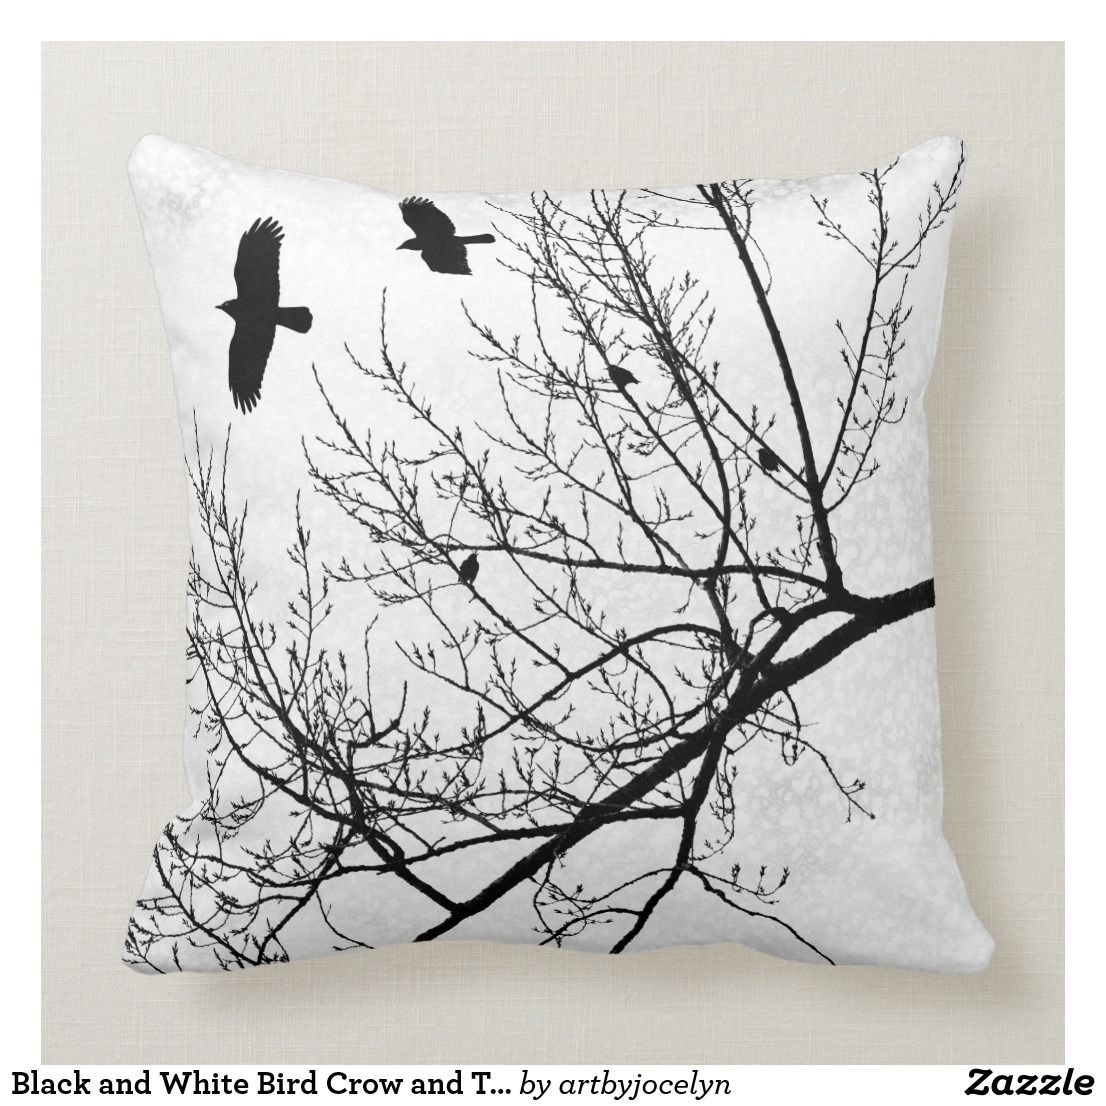 Black And White Bird Crow And Tree Silhouette Throw Pillow Zazzle Com In 2021 Black And White Birds Throw Pillows Tree Silhouette